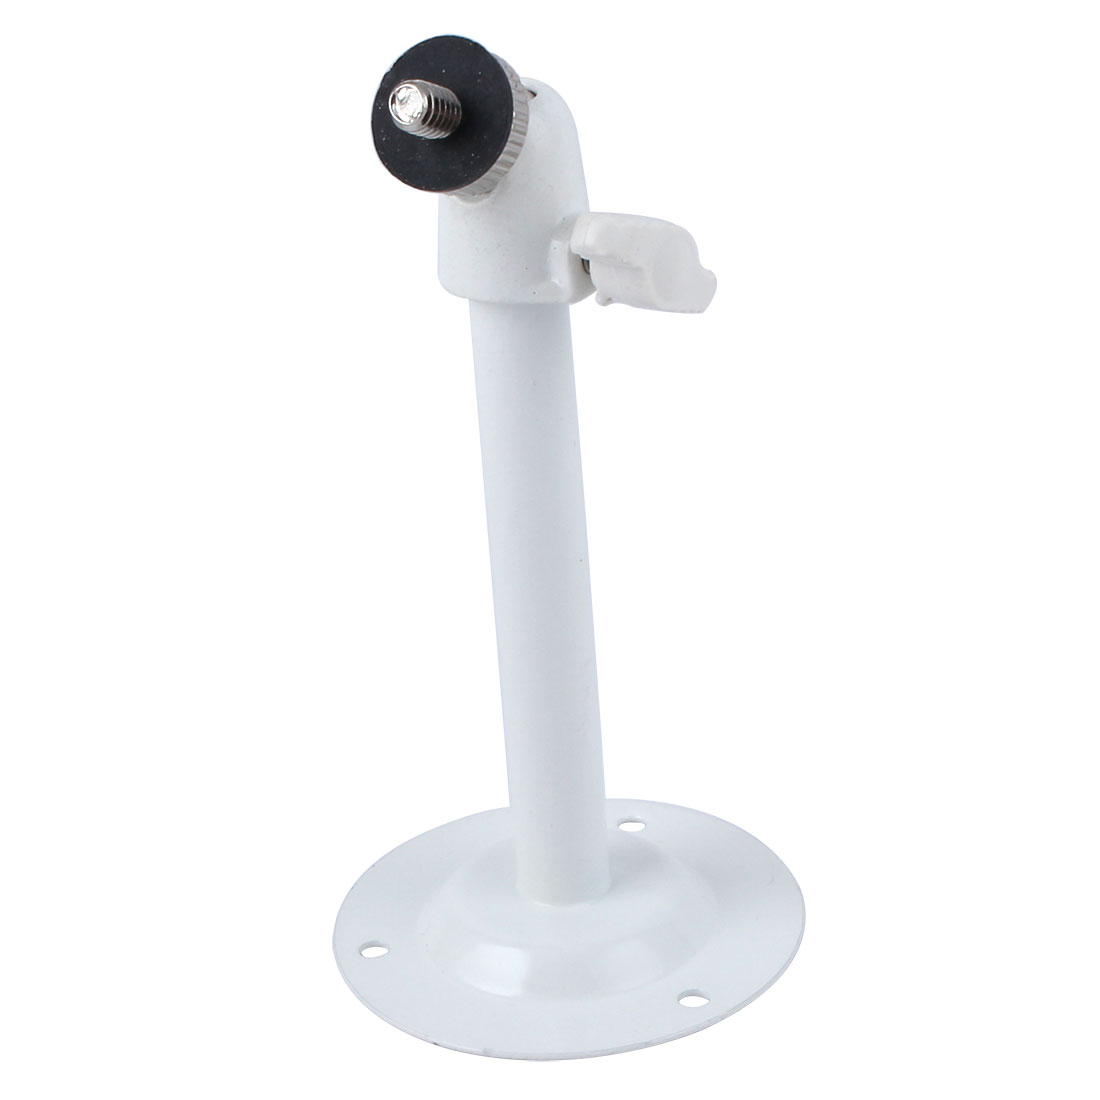 11cm Height White Metal Wall Ceiling Mount Bracket Stand for CCTV Security Camera